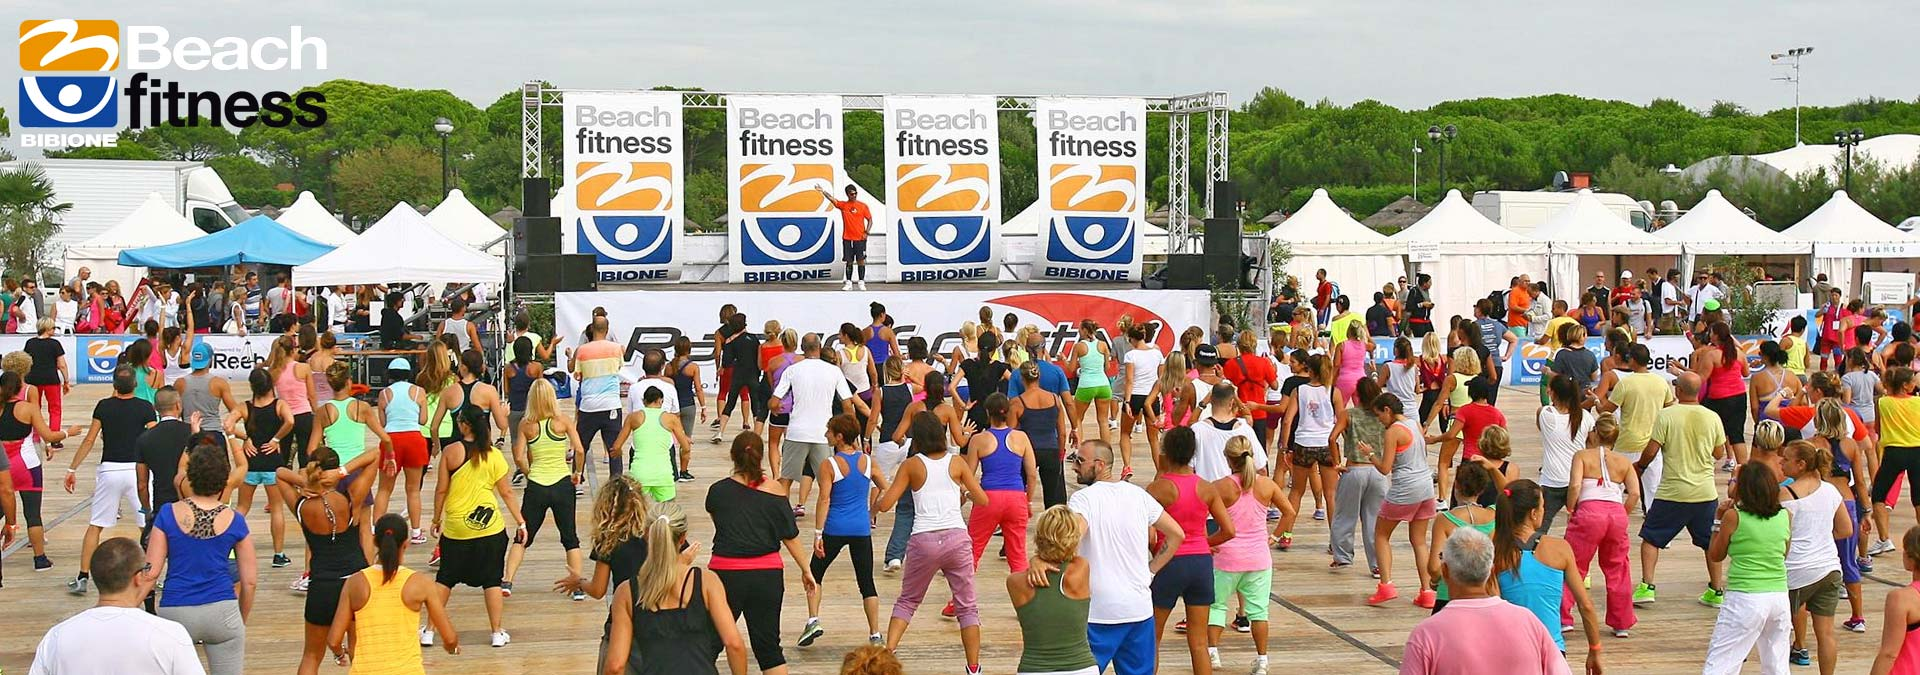 Bibione Beach Fitness 2014